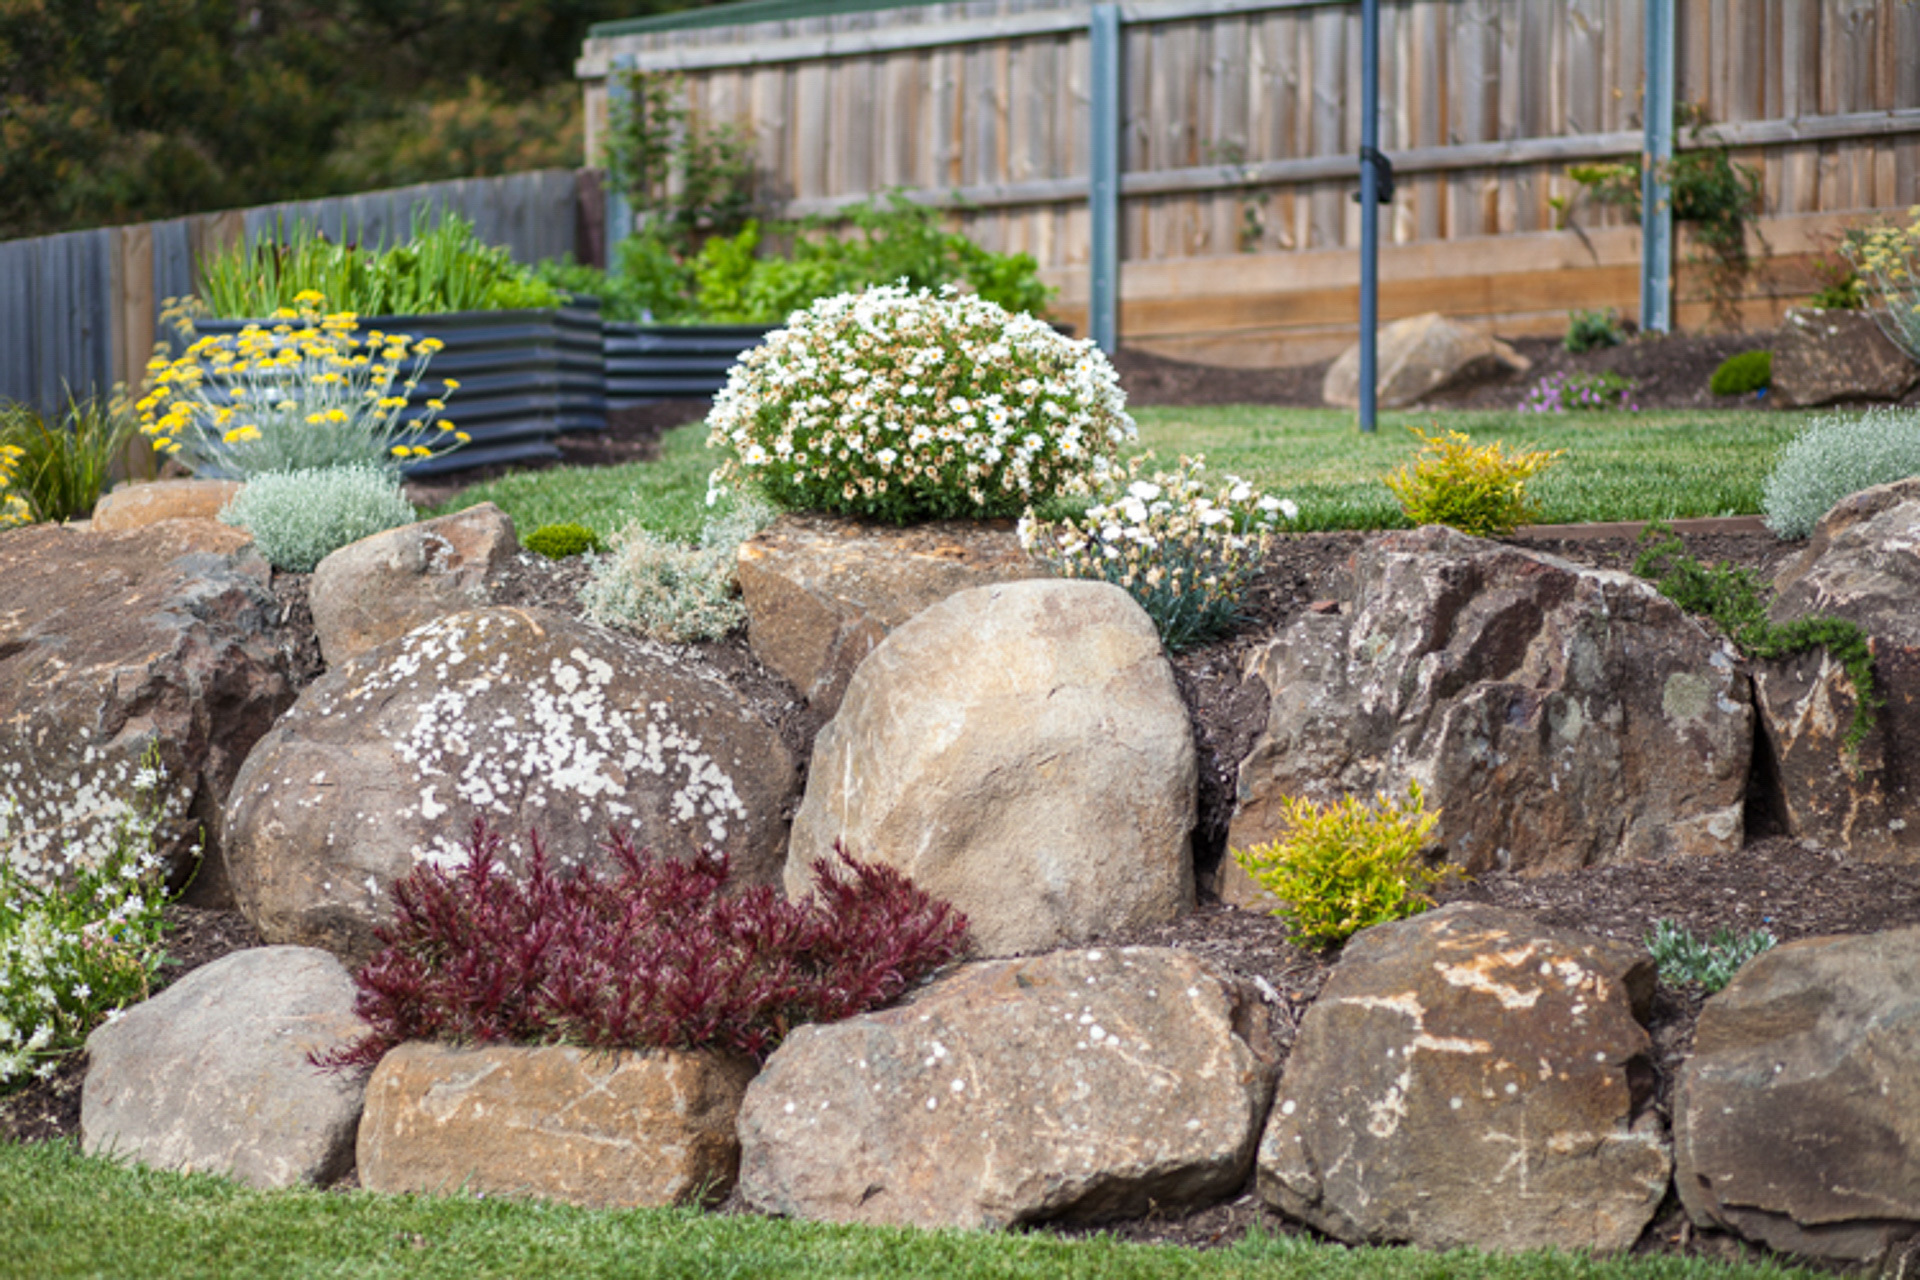 Rocks and boulders andrew nicholson landscapes for Landscaping with rocks and boulders